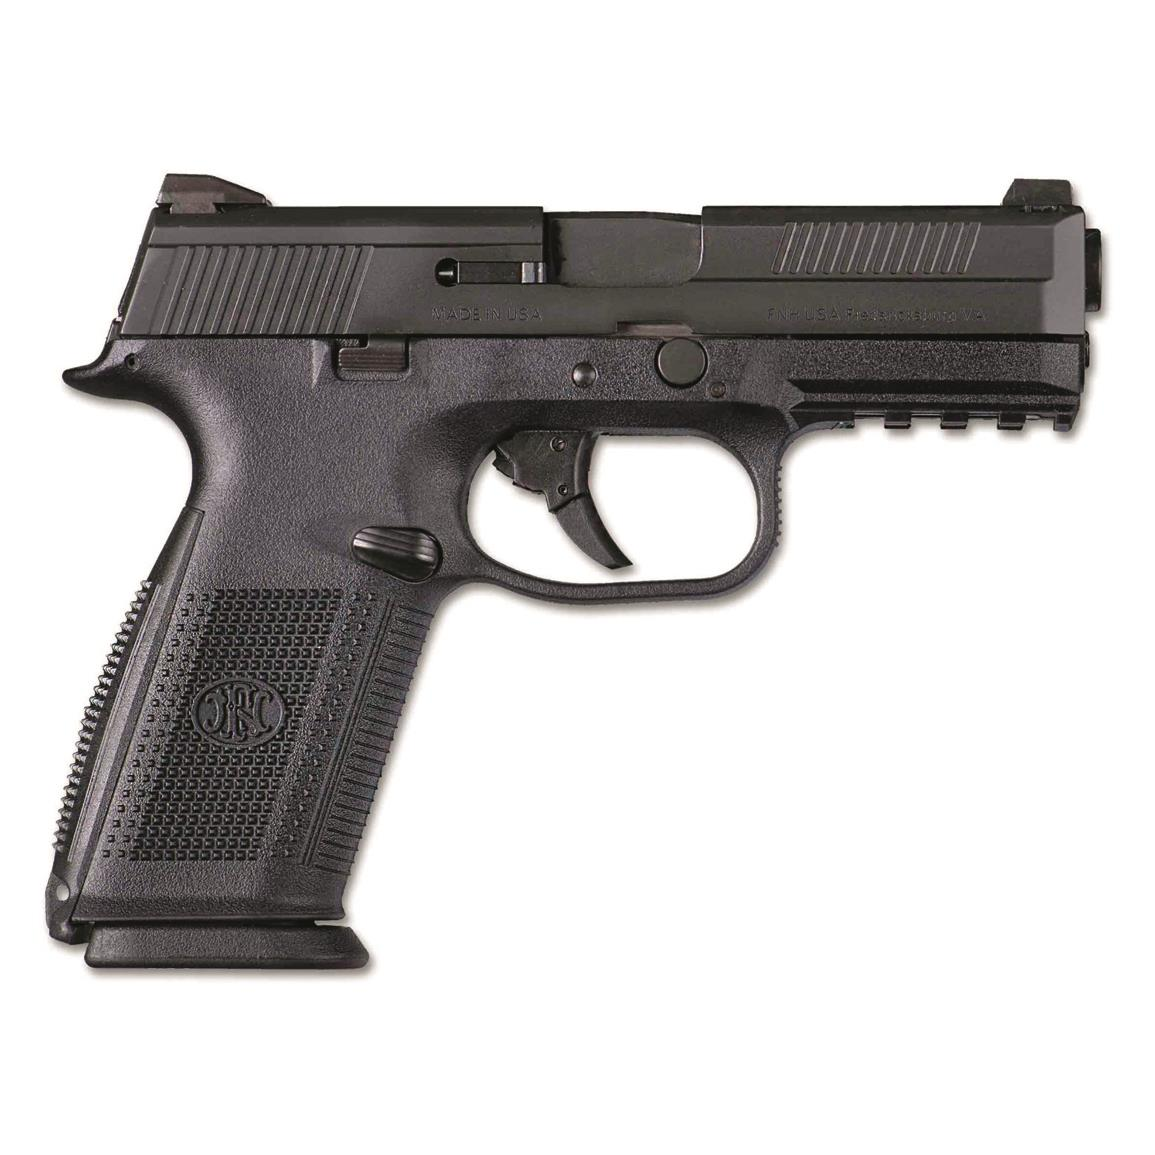 "FN FNS-40, Semi-Automatic, .40 S&W, 4"" Barrel, 3-Dot Night Sights, 10+1 Rounds"